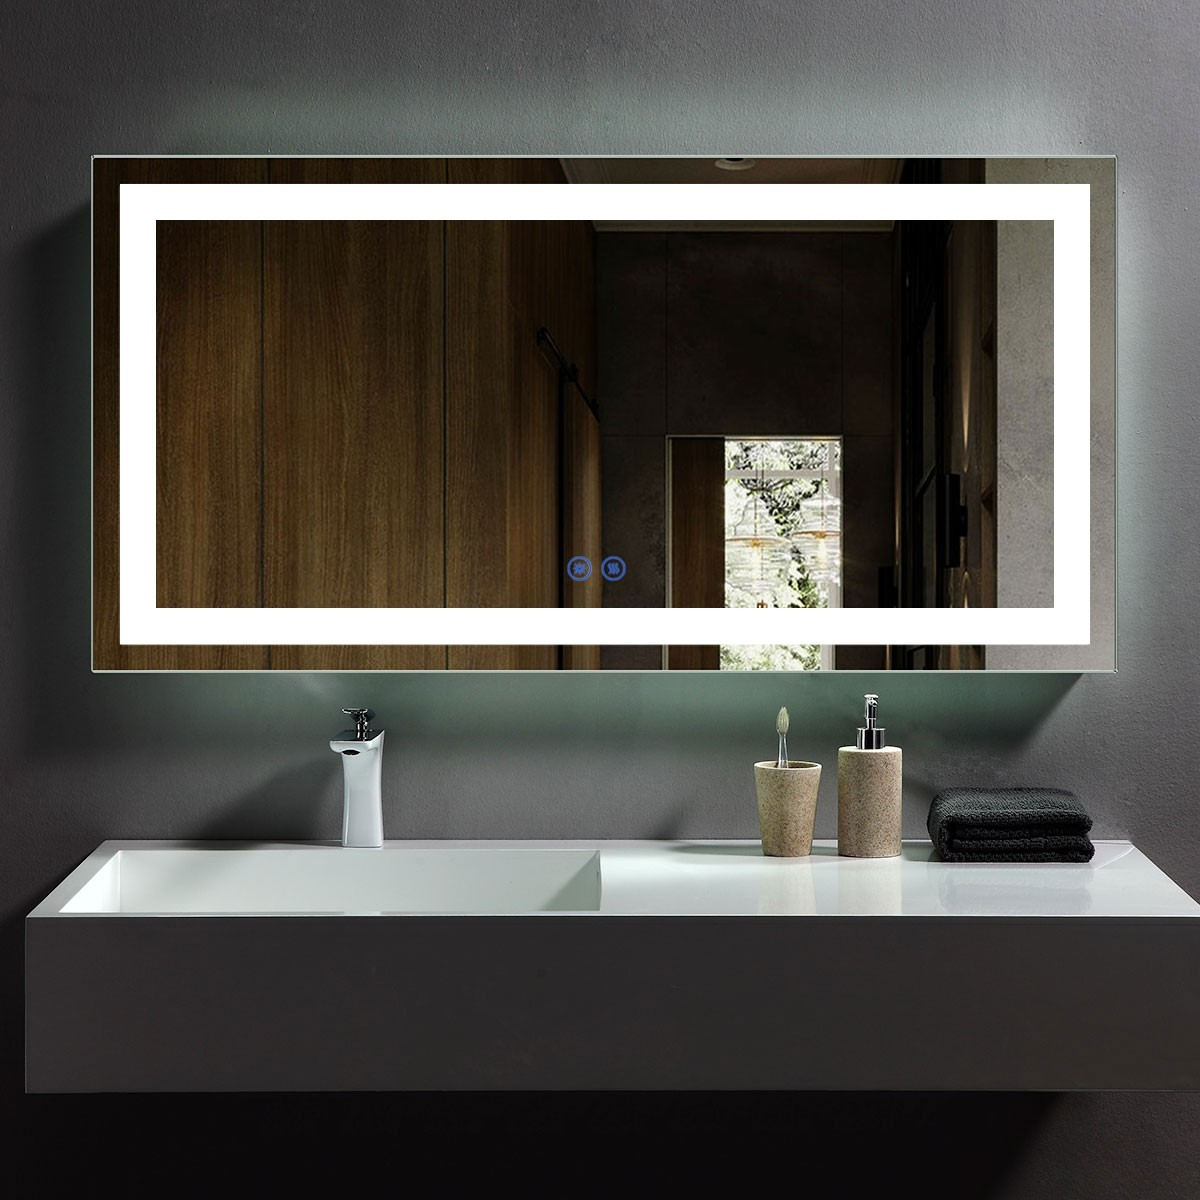 DECORAPORT 48 x 24 Inch LED Bathroom Mirror with Touch Button, Anti Fog, Dimmable, Vertical & Horizontal Mount (D209-4824)